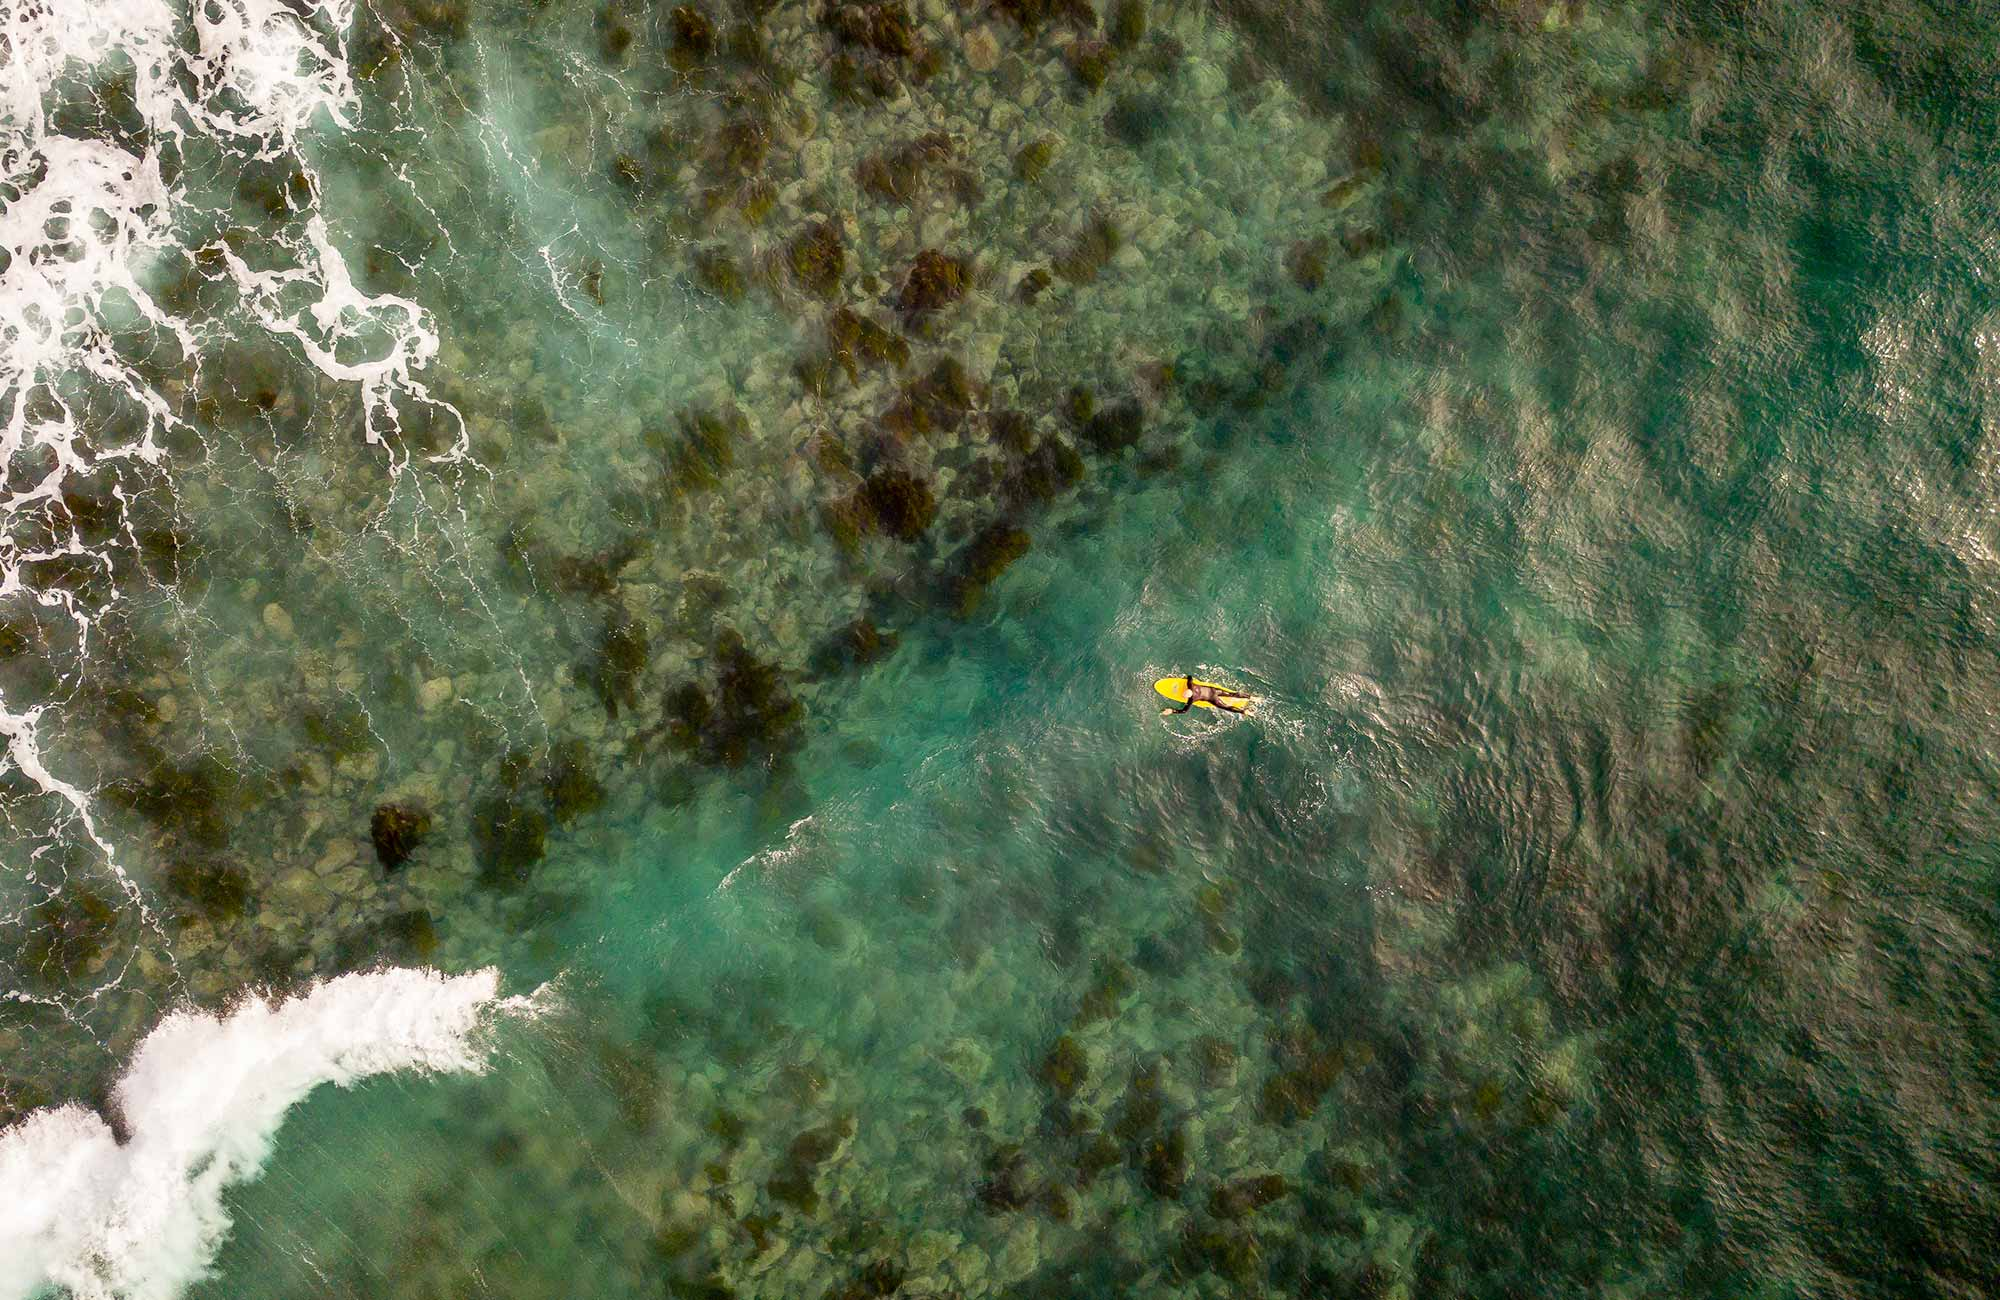 Aerial view of surfer in the ocean near Saltwater Creek campground. Photo: J Spencer/OEH